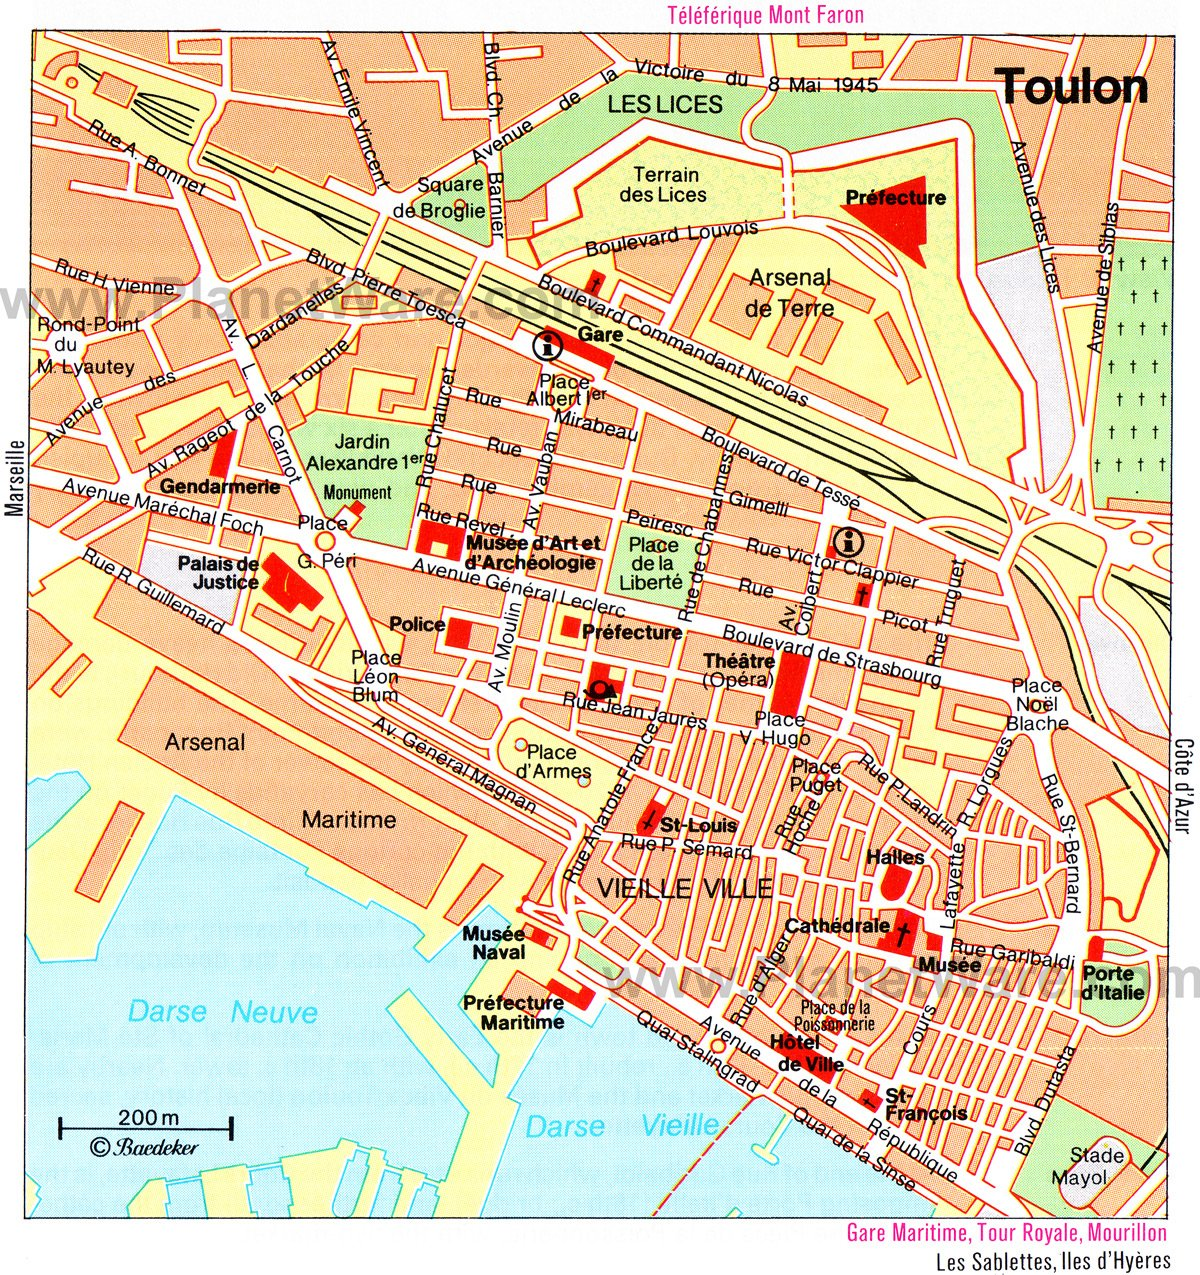 10 Top Tourist Attractions in Toulon and Easy Day Trips – France Tourist Attractions Map